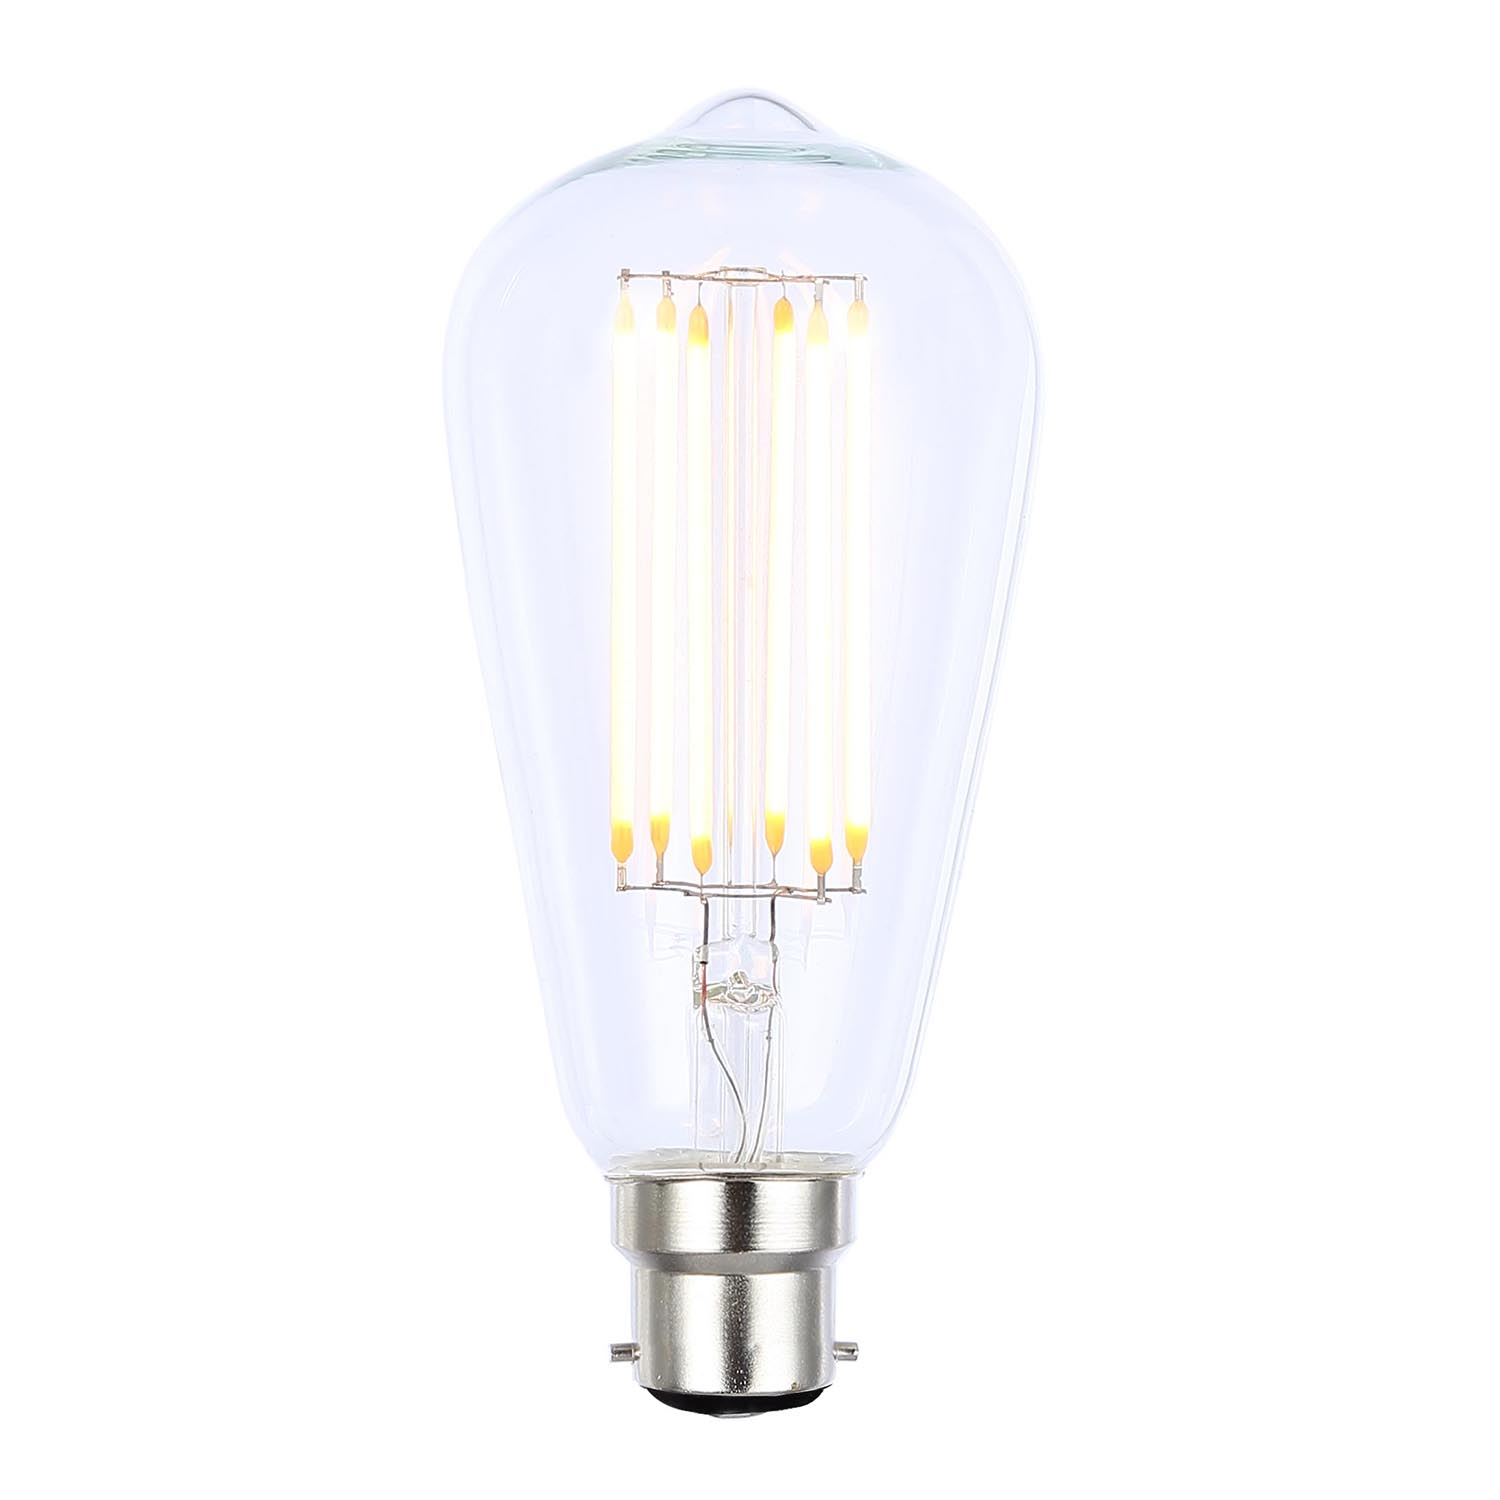 Image of Casa 6W LED Cage Bc Filament Light Bulb, Clear